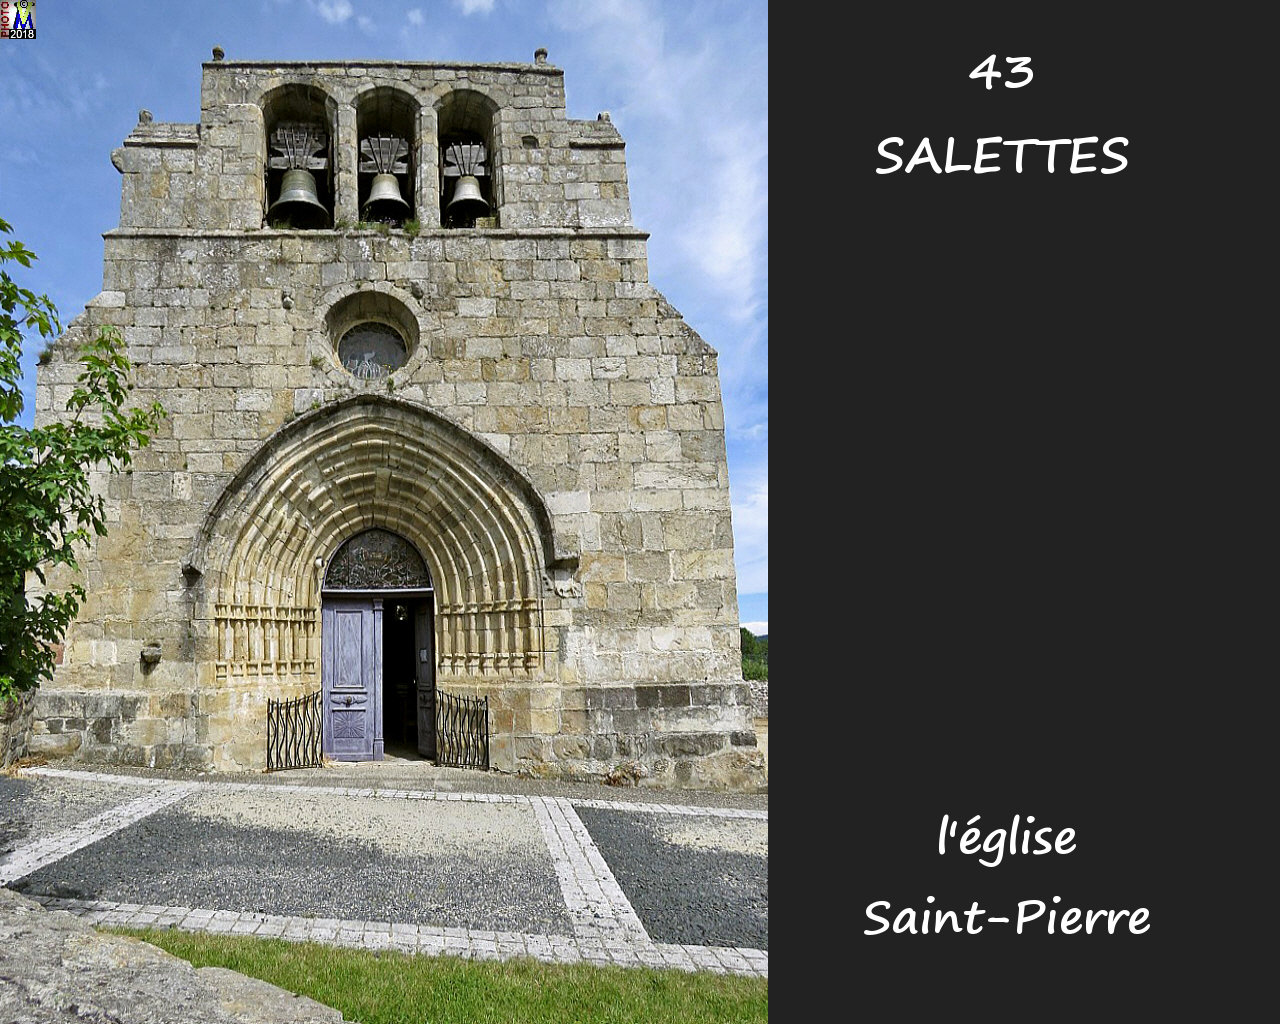 43SALETTES_eglise_102.jpg